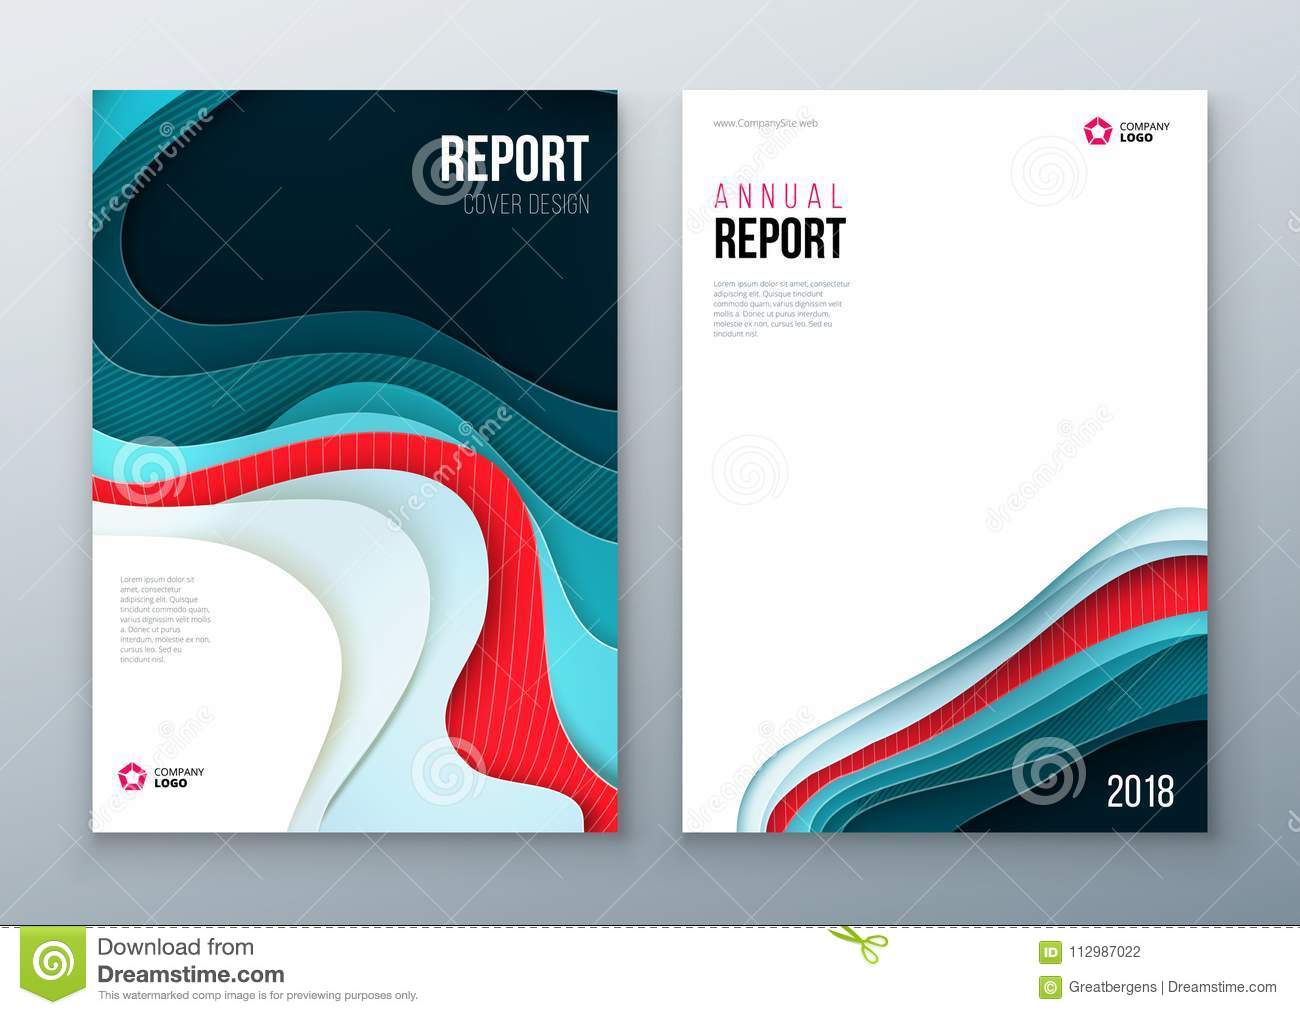 Annual report Cover design. Corporate business template for brochure, annual report, catalog, magazine, book, booklet